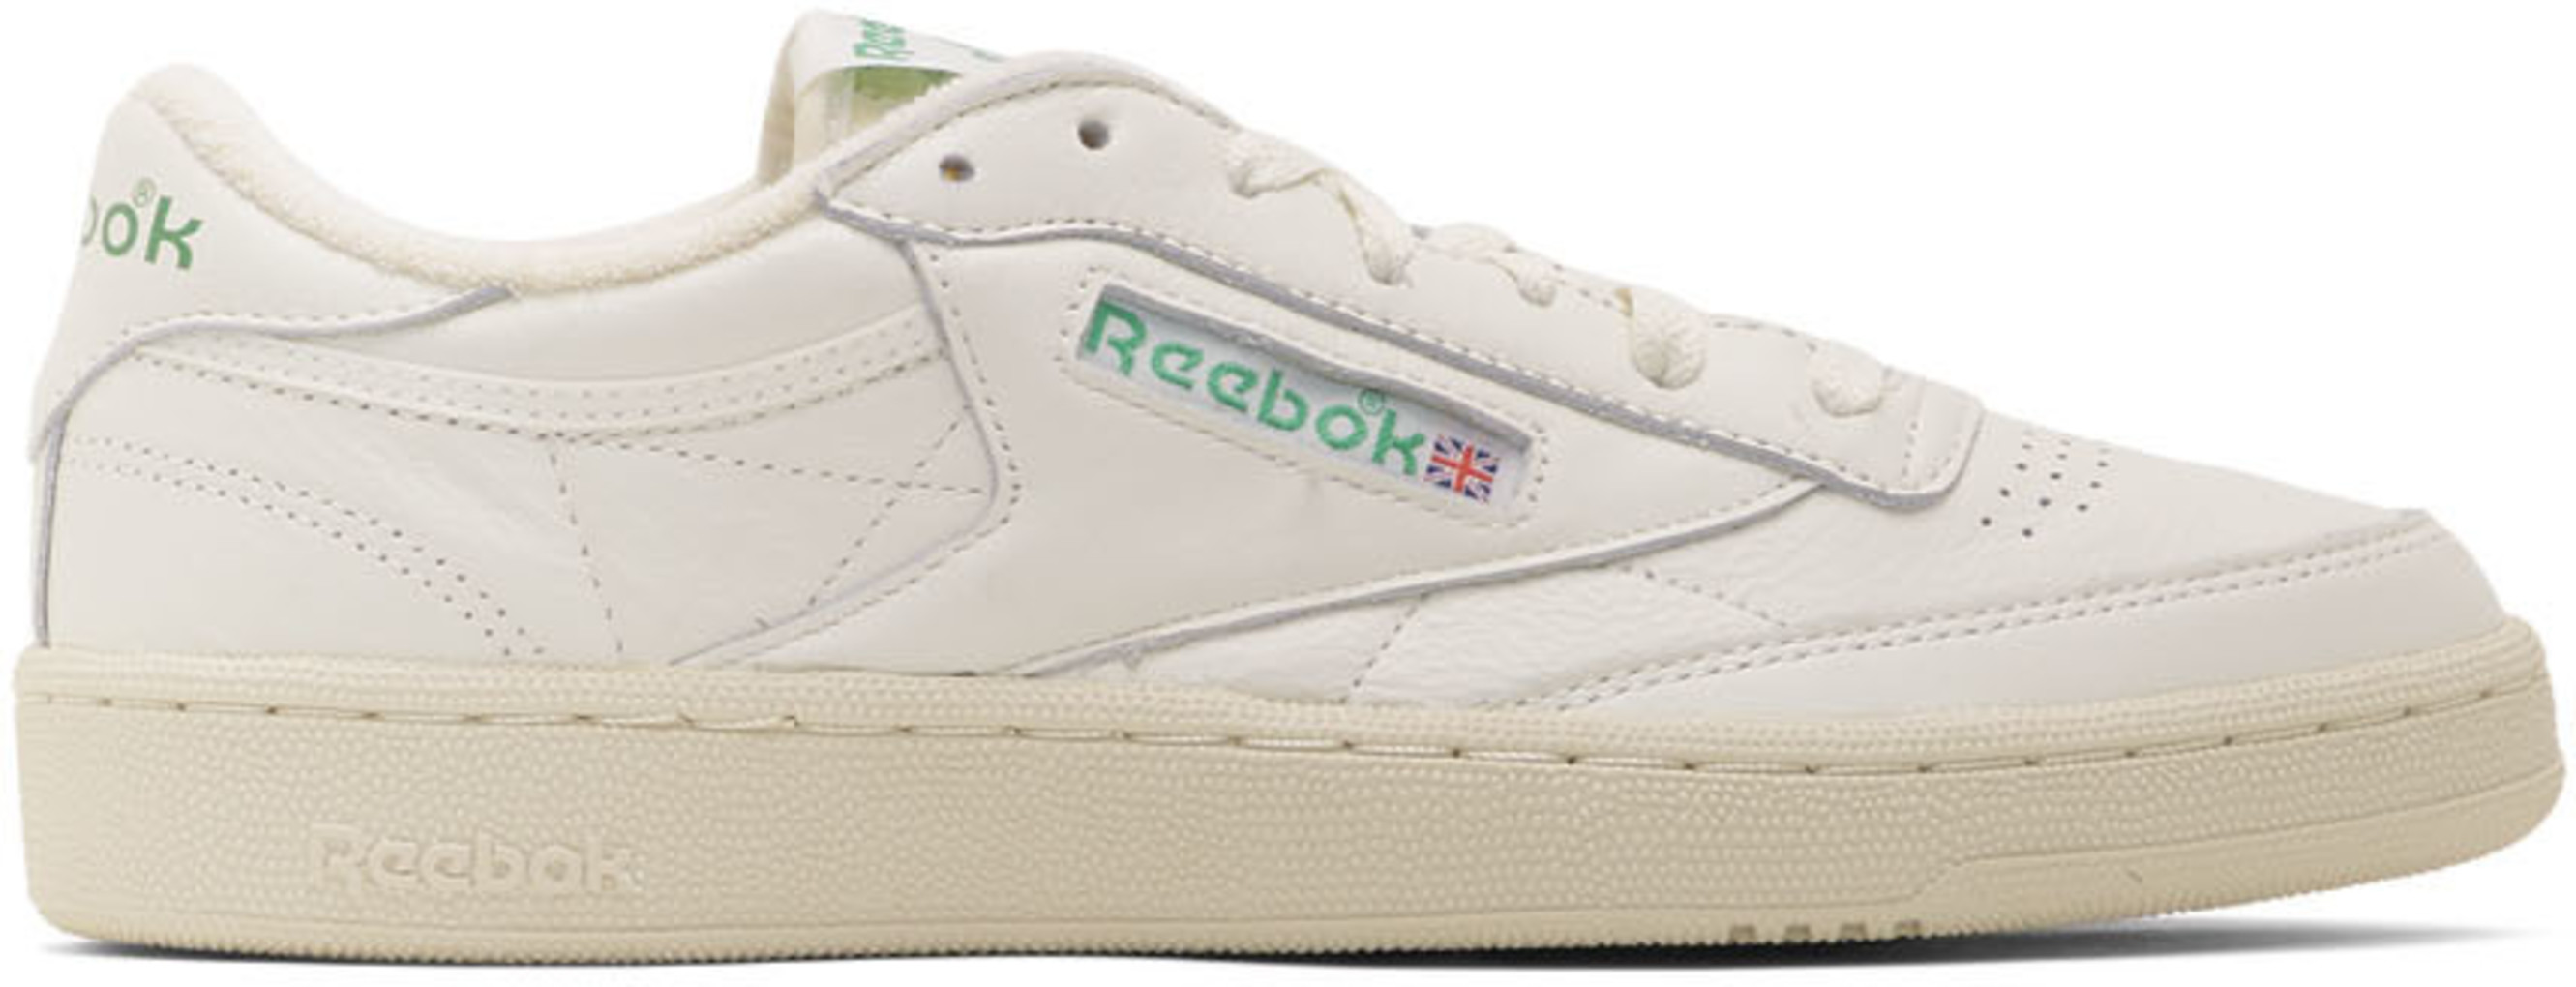 8ed3d96d88 Off-White & Green Club C 85 Vintage Sneakers